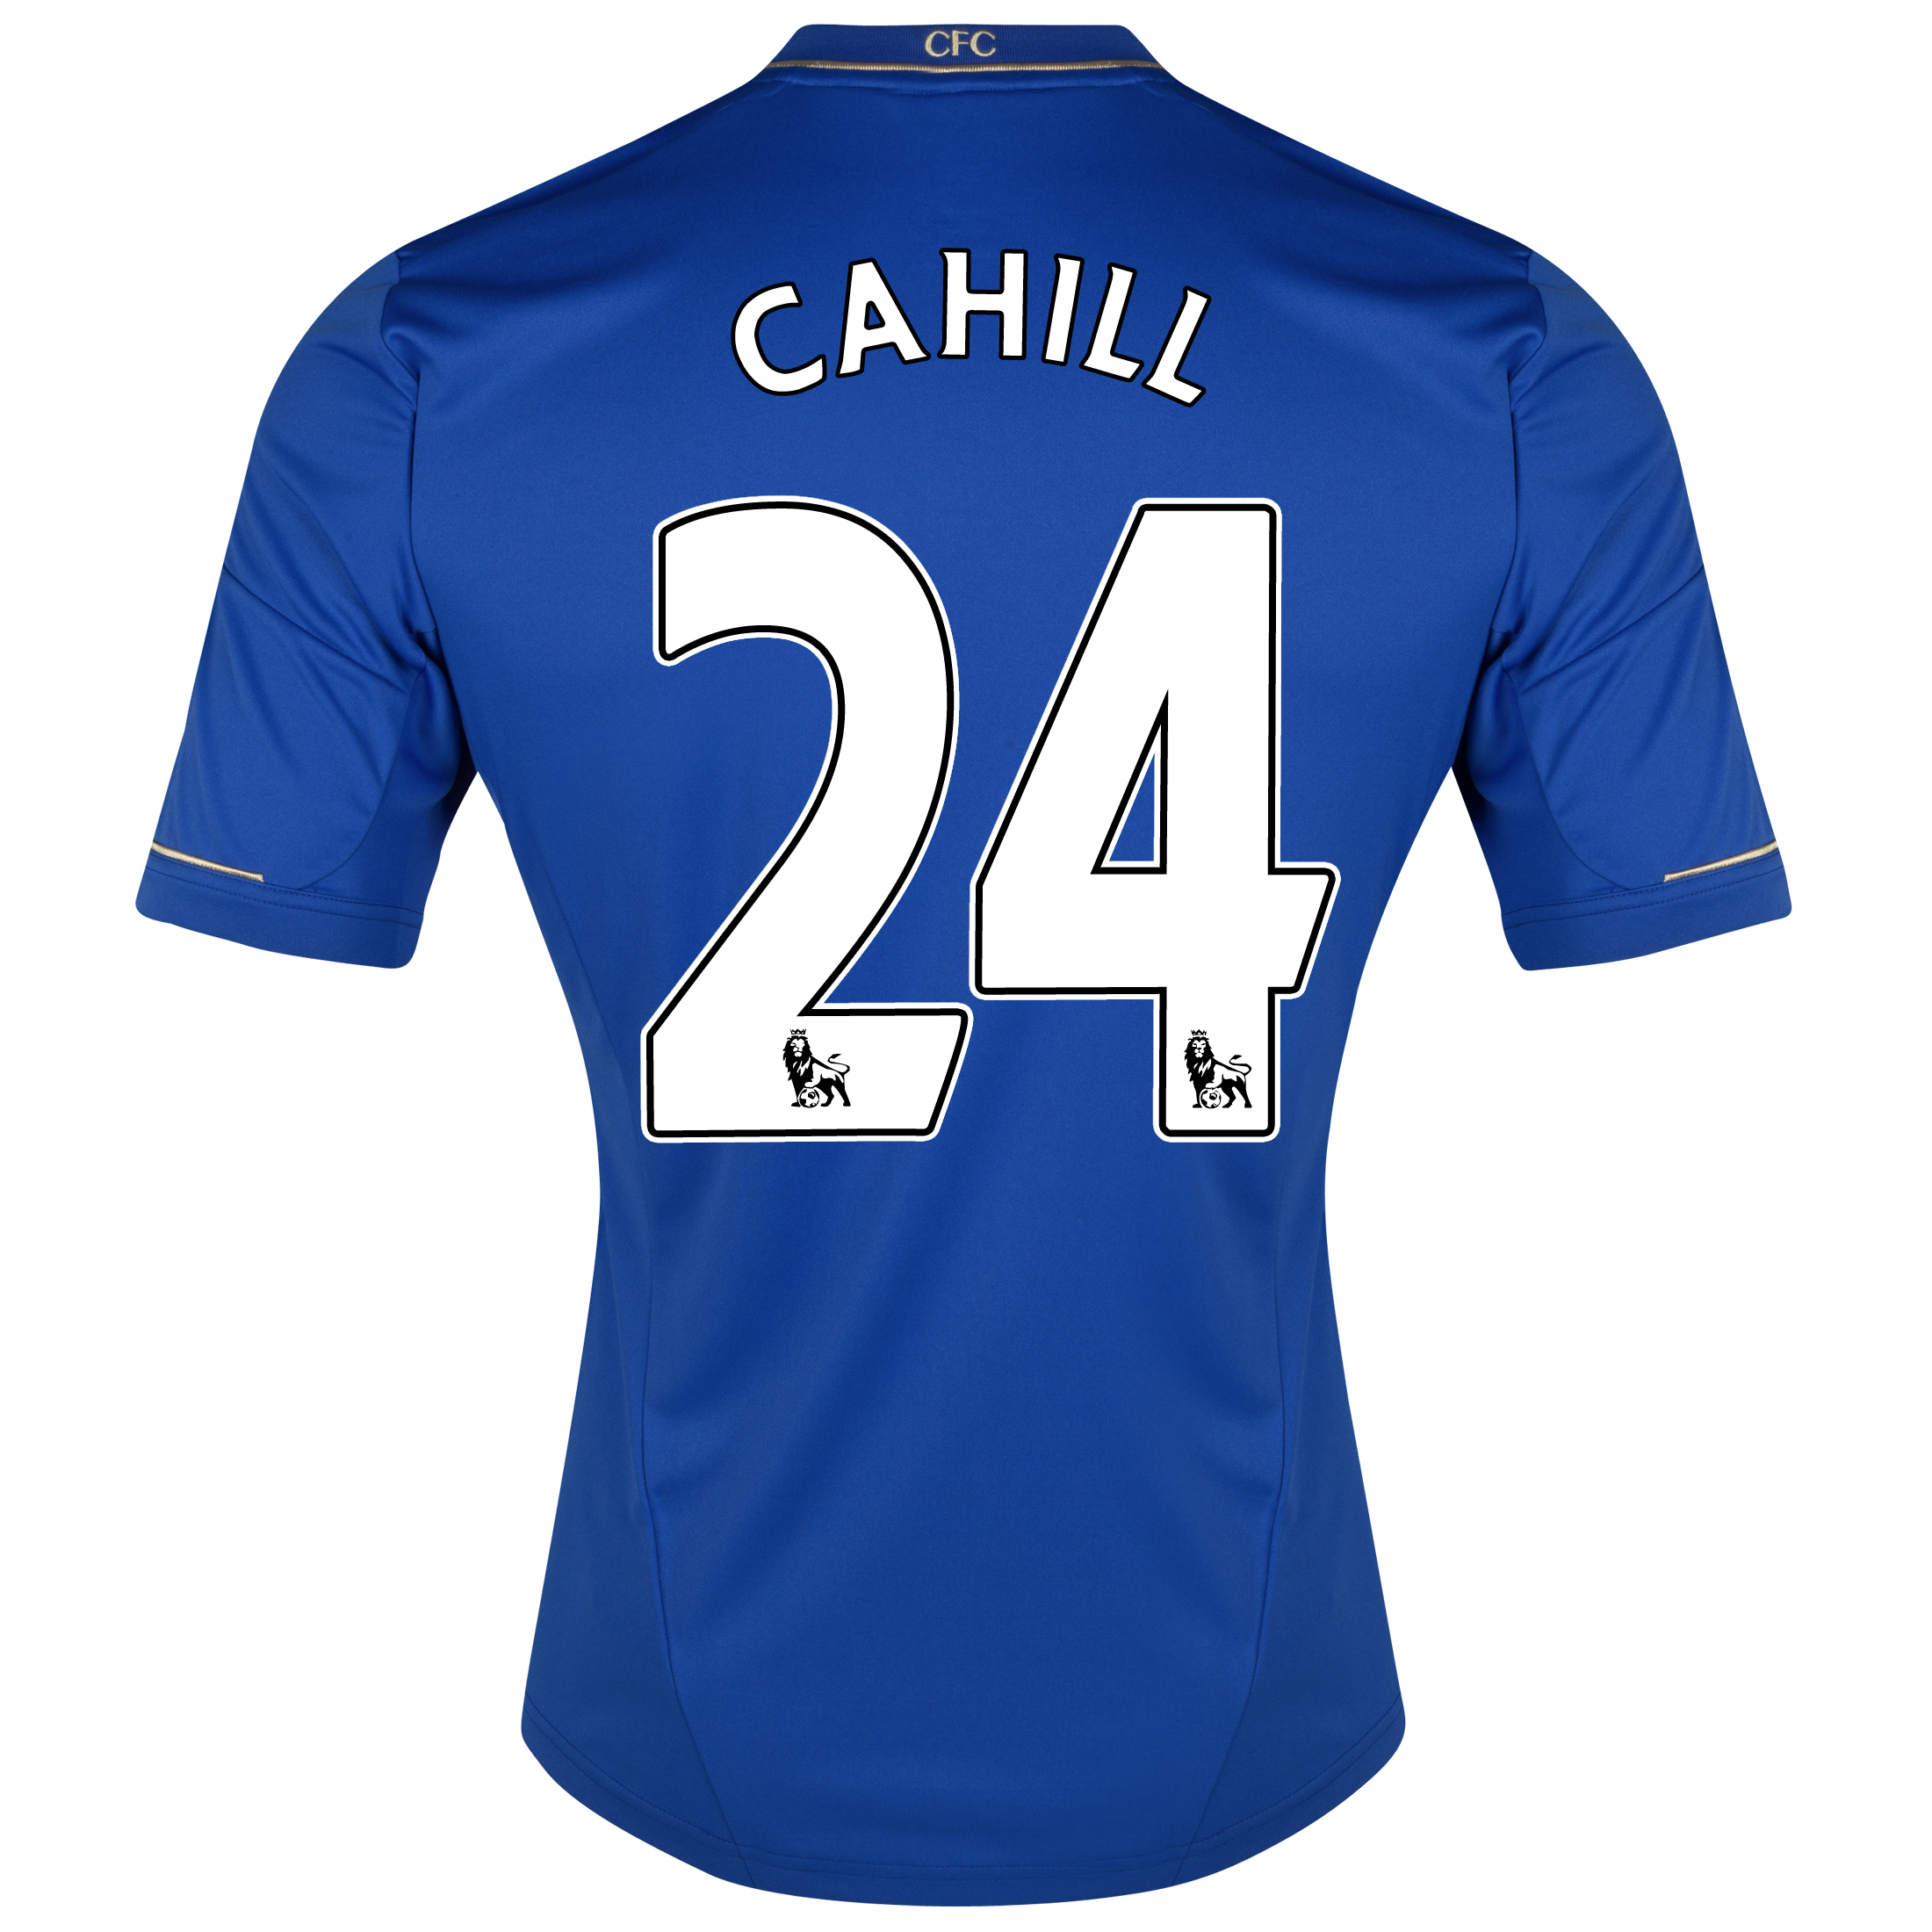 Chelsea Home Shirt 2012/13 - Kids with Cahill 24 printing